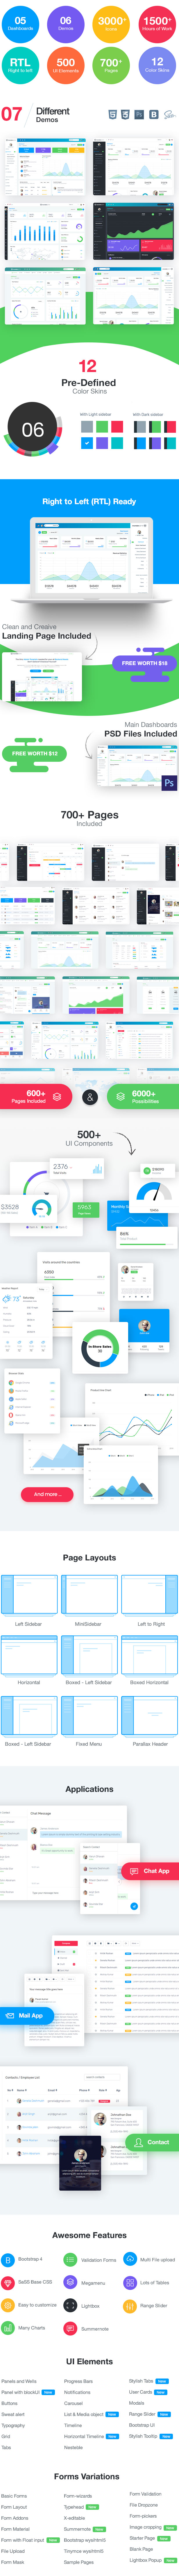 Monster - Most Complete Bootstrap 4 Admin Template - 1